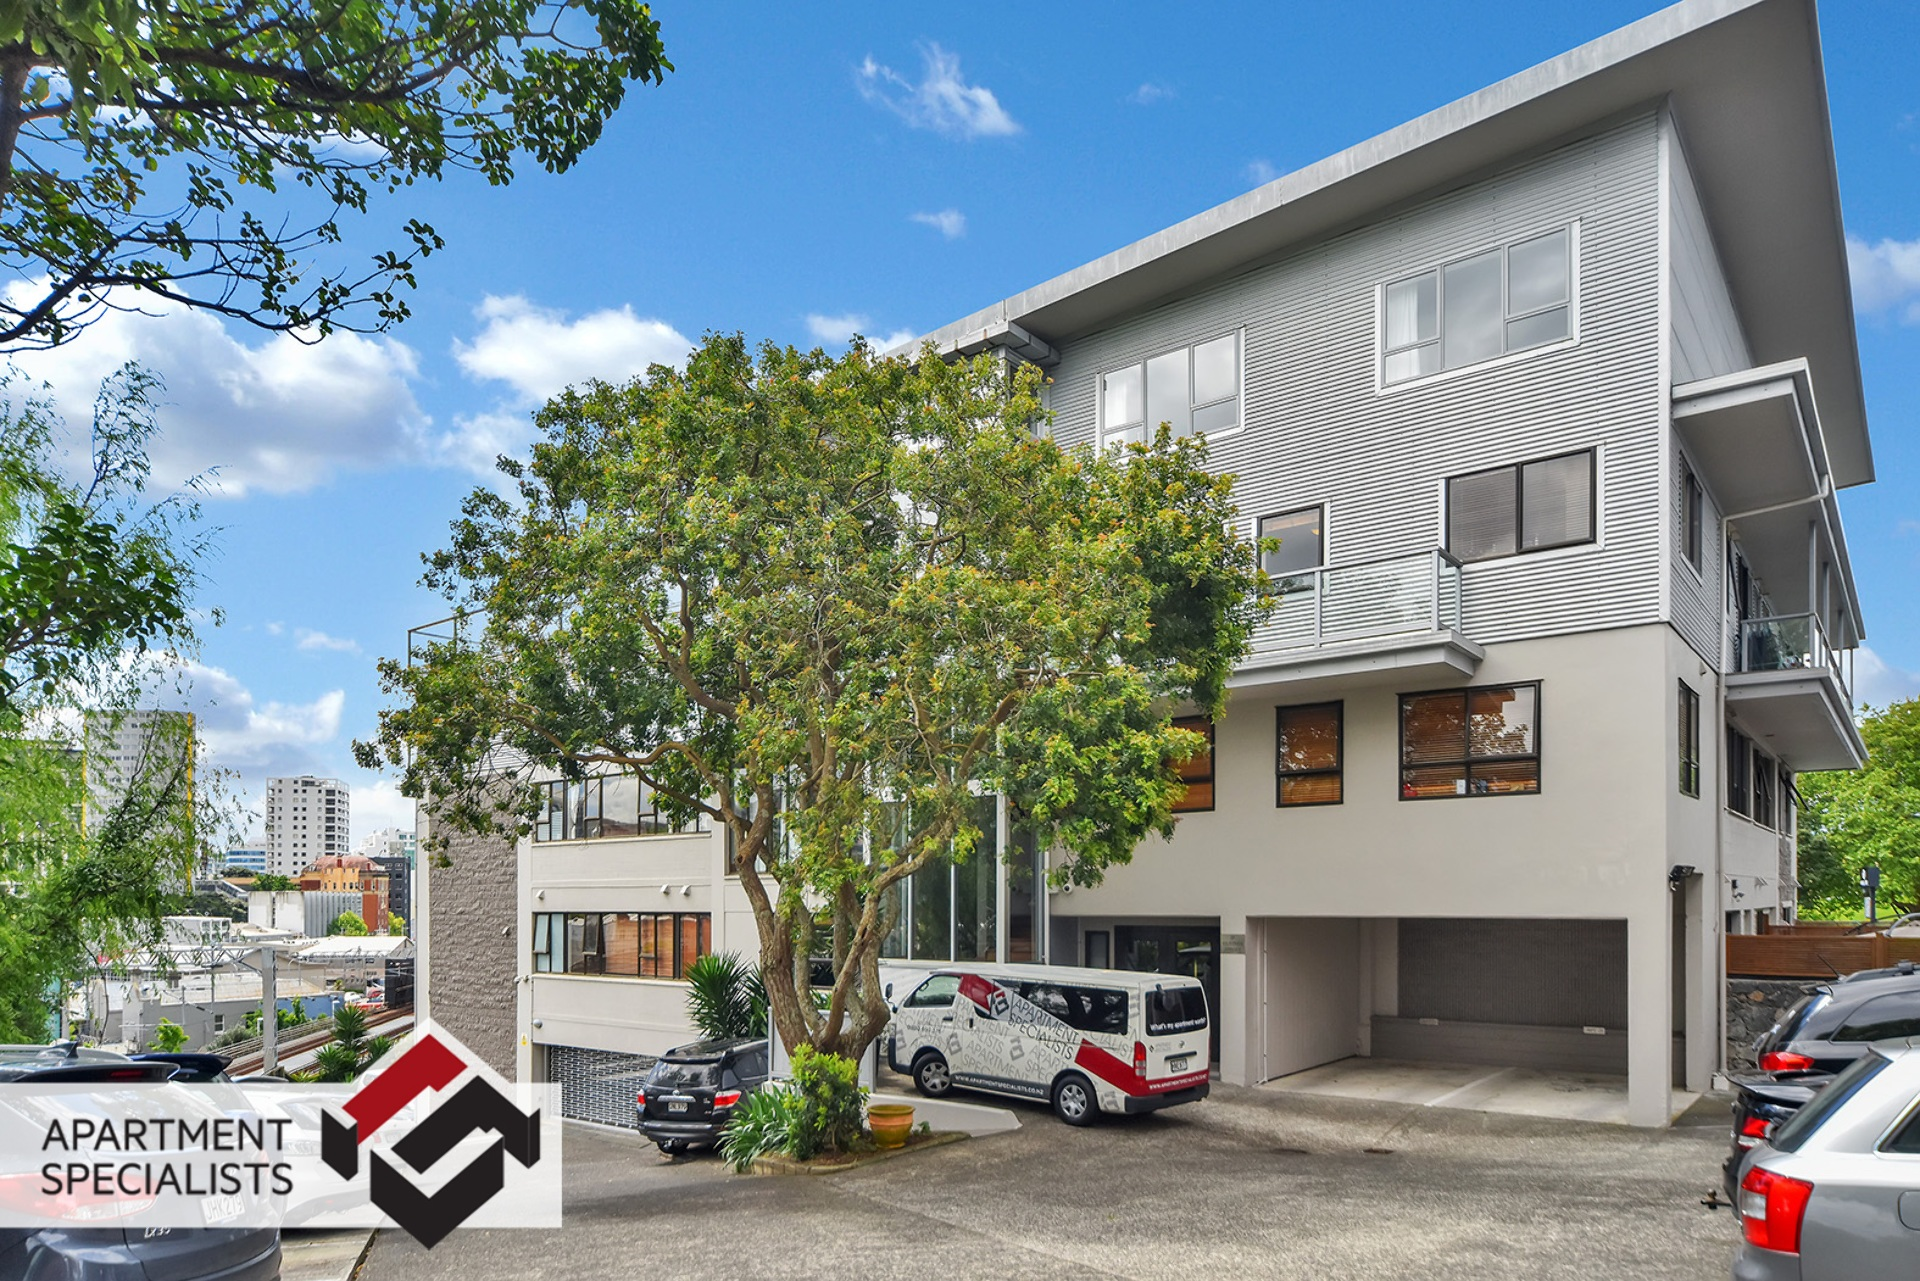 2 | 30 Heather Street, Parnell | Apartment Specialists